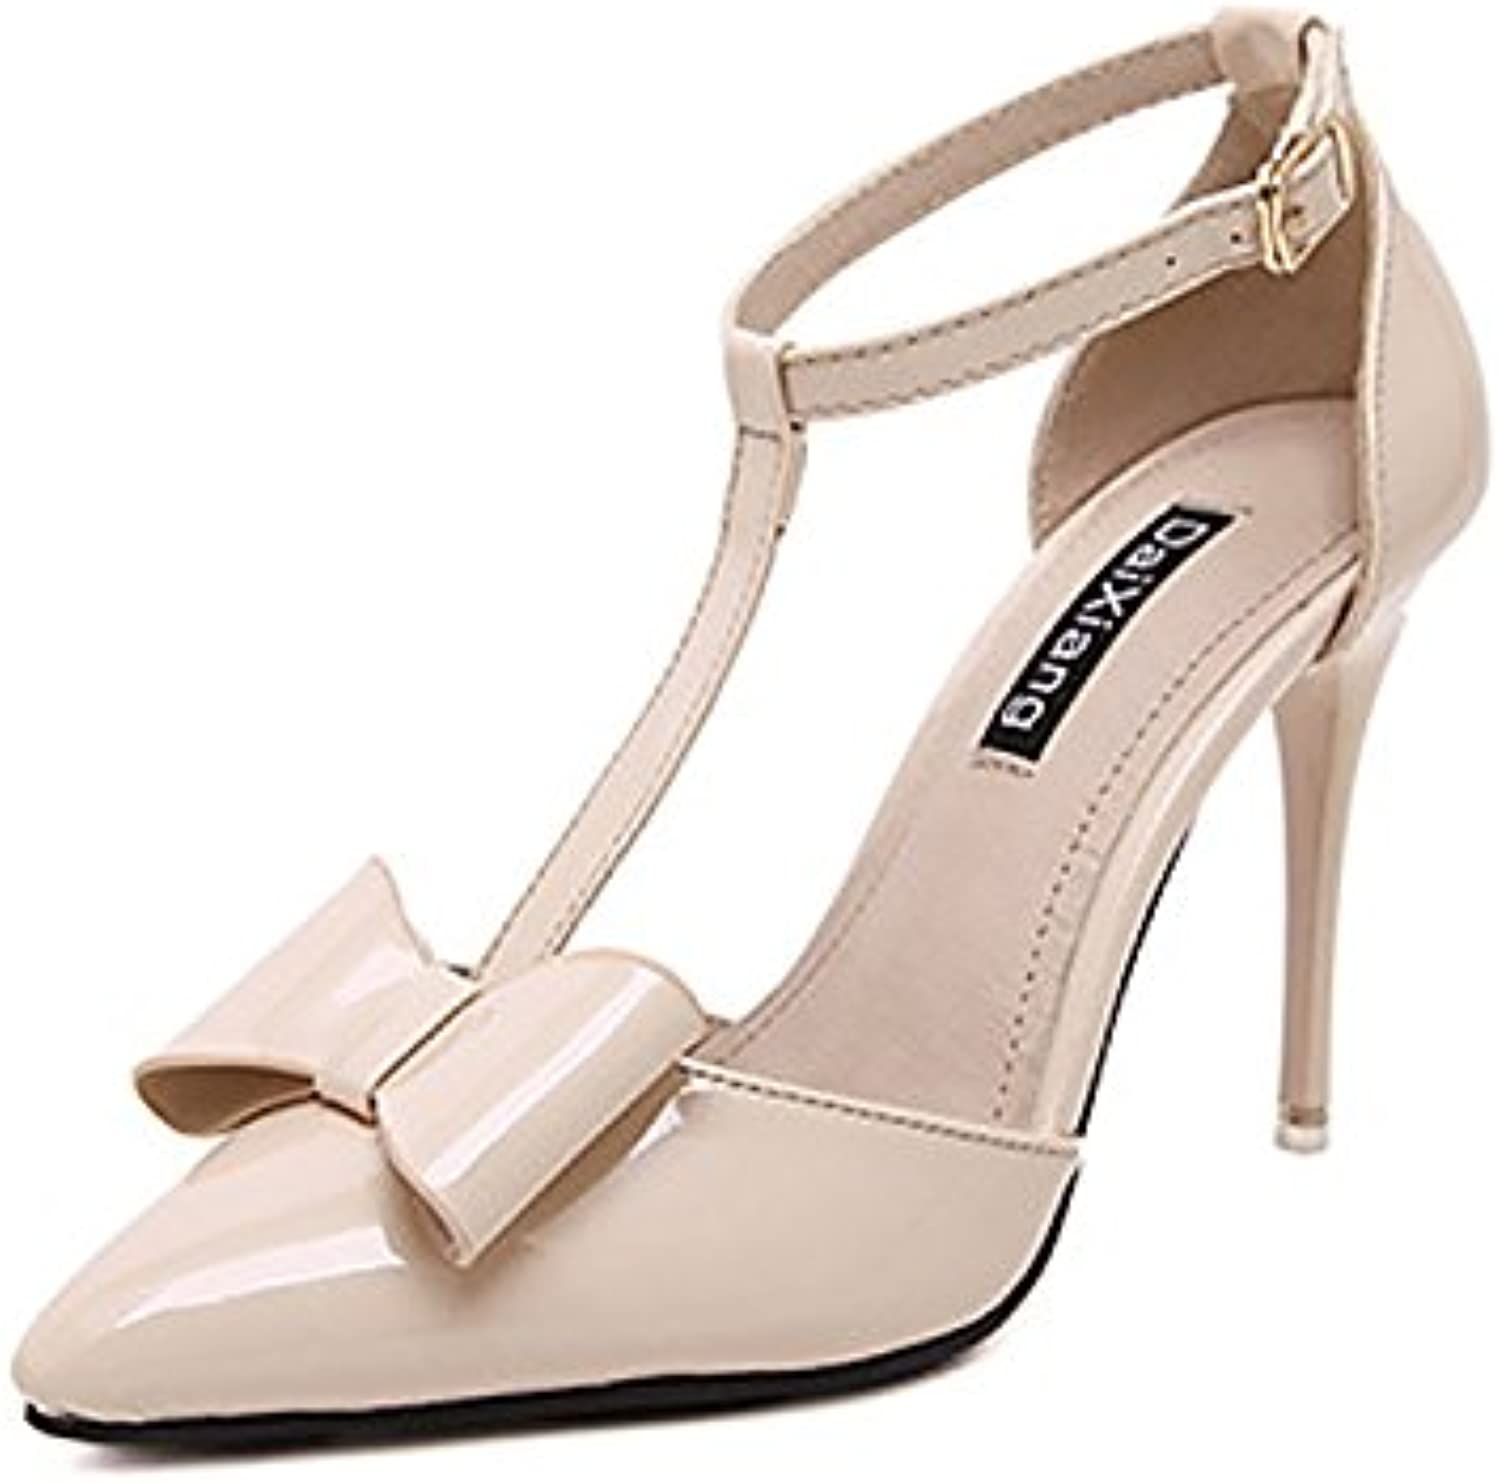 WHW Women shoes bow tie single shoe points a field for the high-heel shoes ,apricot color,34